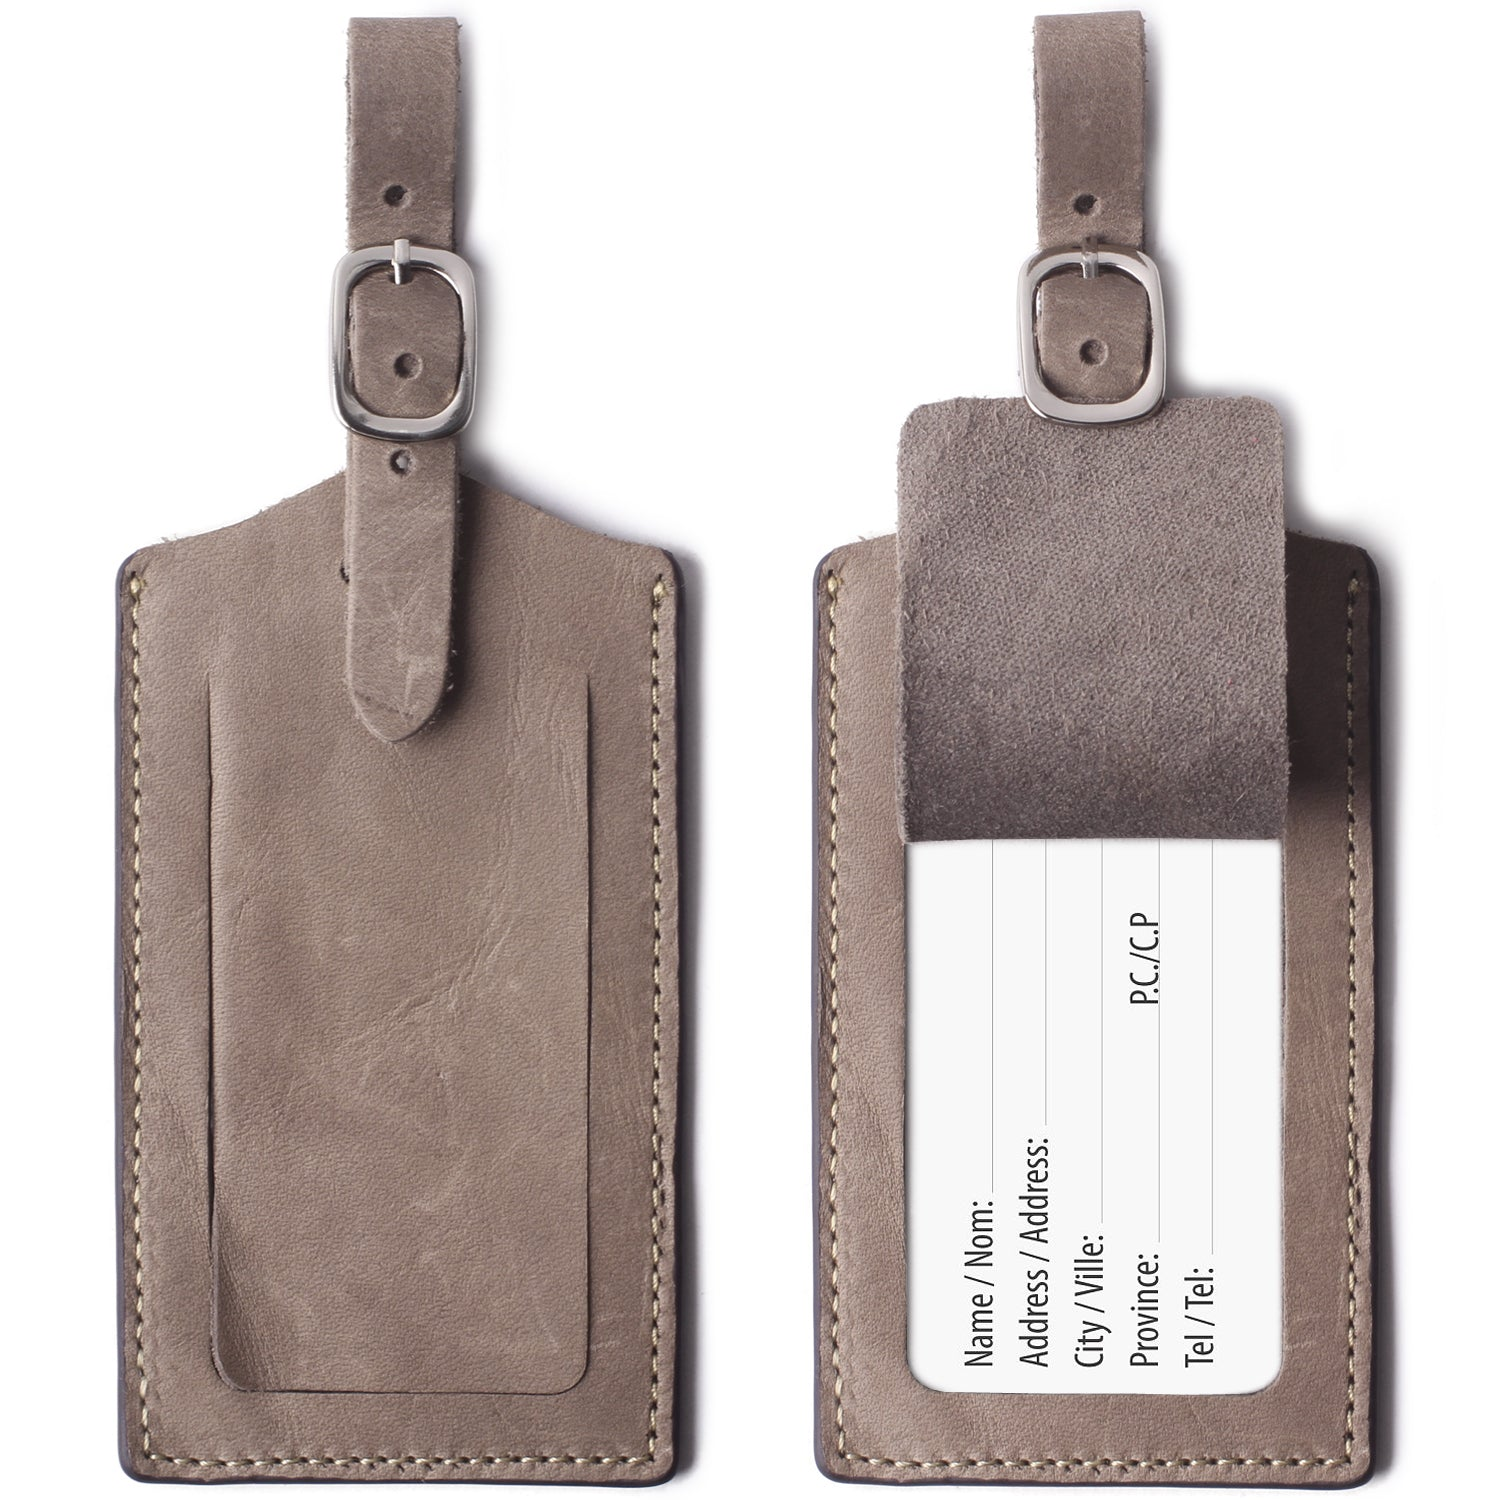 Genuine Leather Luggage Tags Bag Case Holders Baggage Travel Tag with Full Back Privacy Cover 1 Pcs Grey - Borgasets